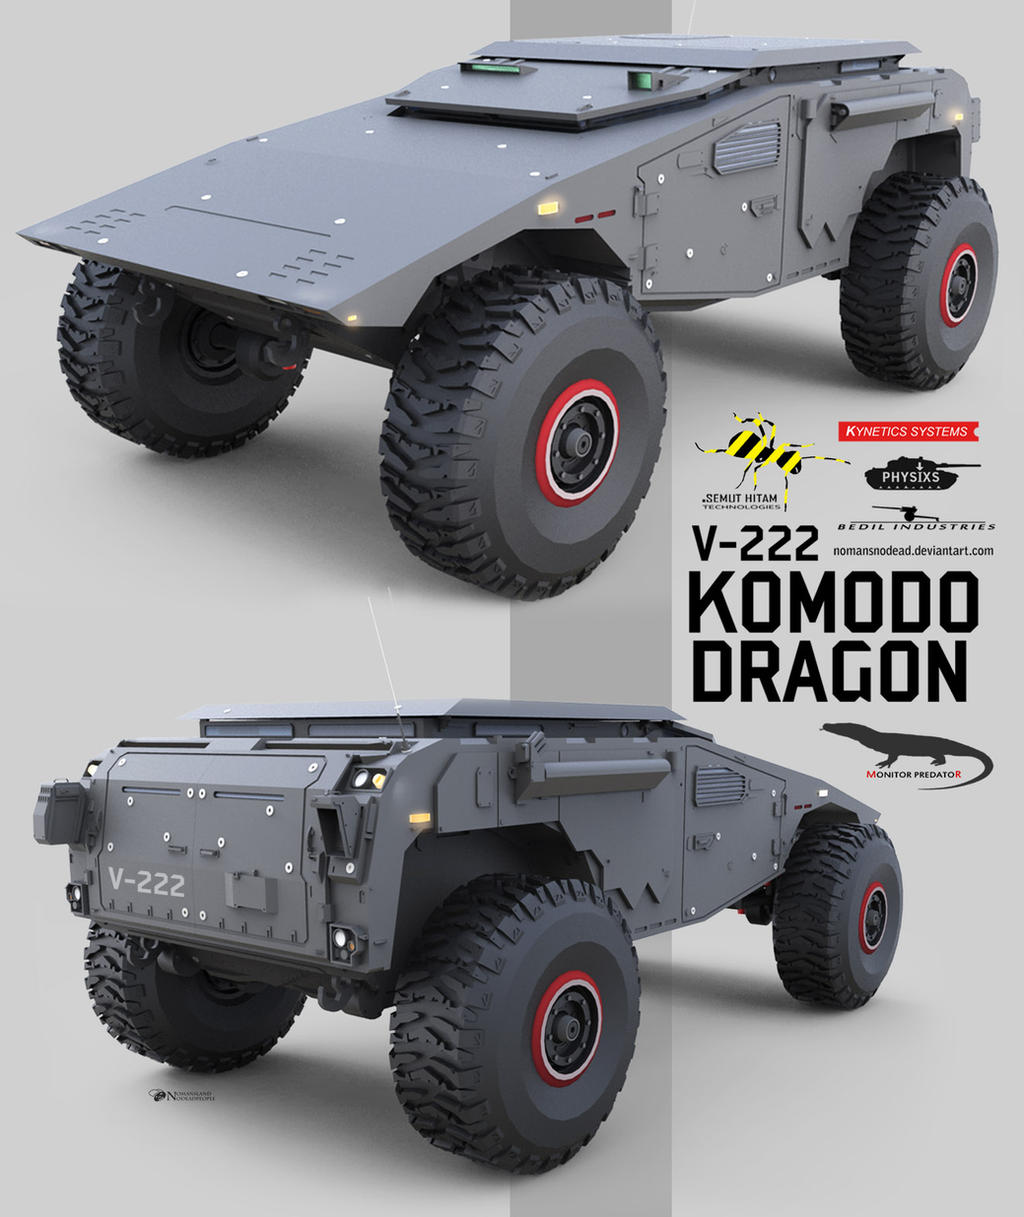 rc car model shop with Komodo Dragon 596145077 on 121069006389 moreover Hawker Typhoon Detail Photos also Uebersicht Von Stecker Buchsen Im Modellbau also Rat Rod Model 334710464 likewise Reely Dune Fighter Brushed 110 RC Model Car Electric Buggy 4WD RtR 24 GHz.